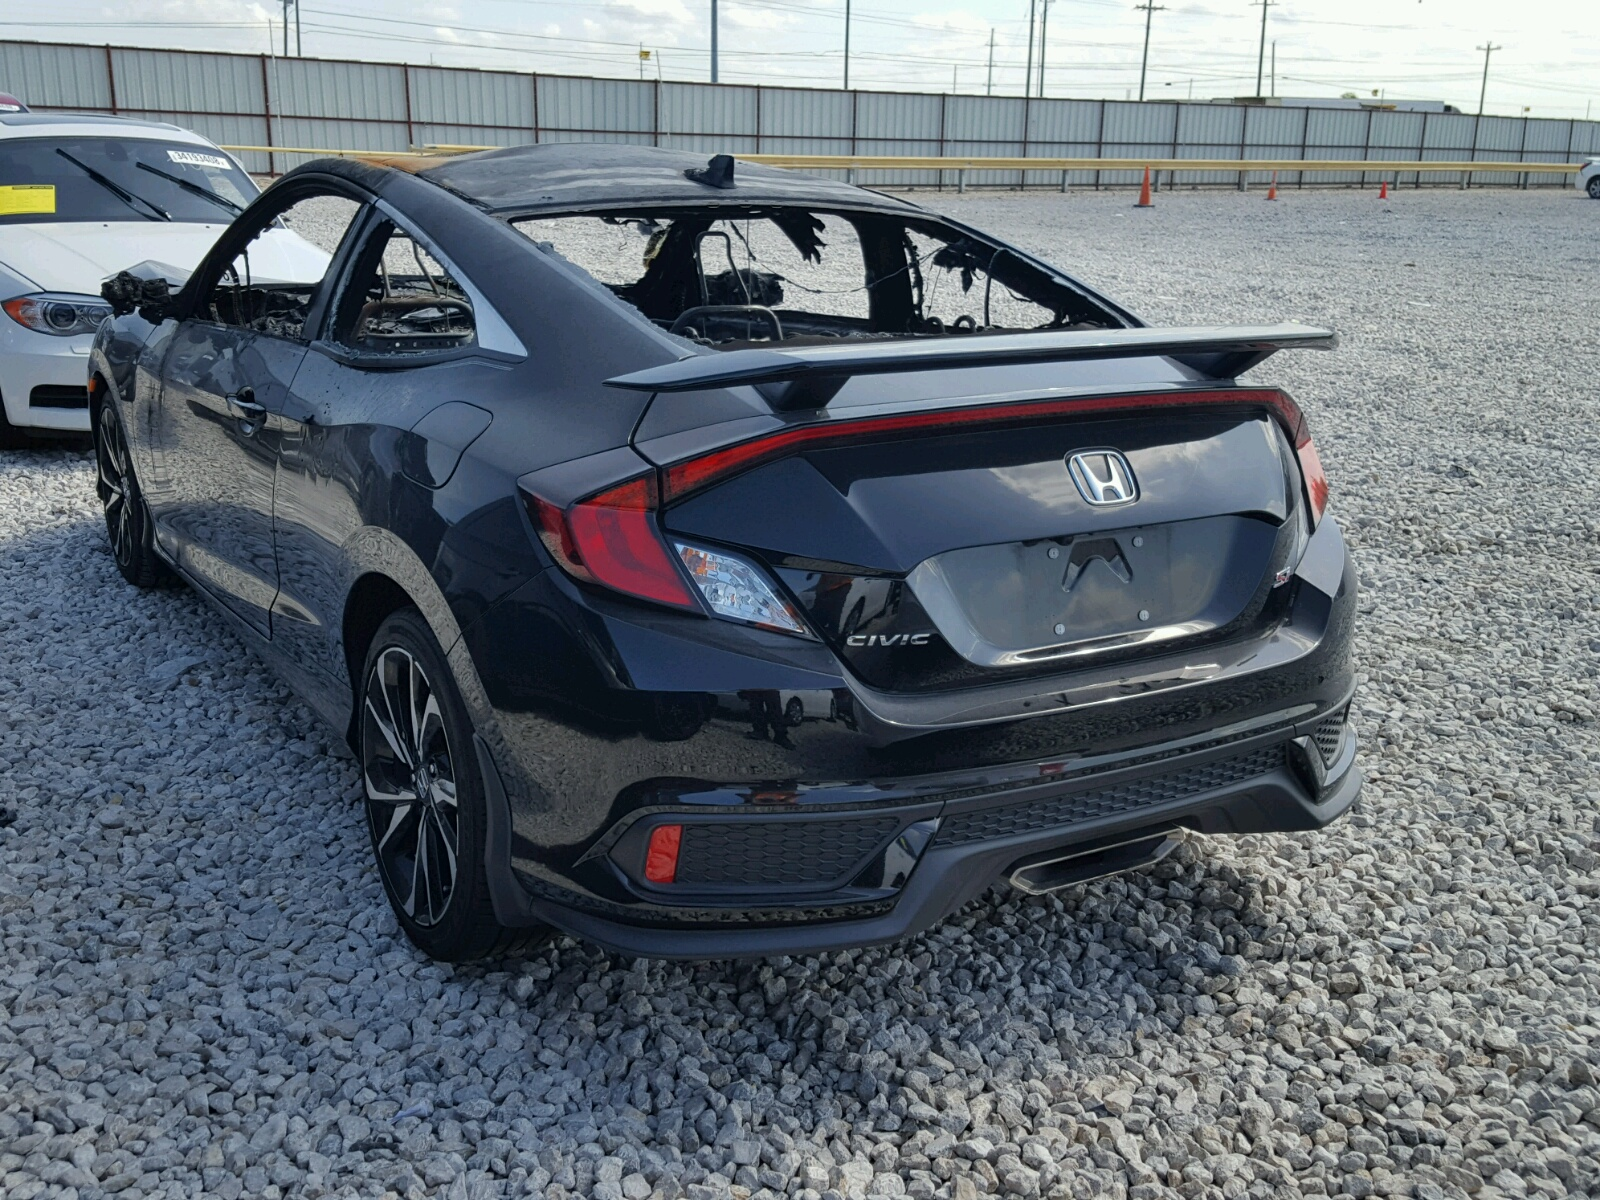 2hgfc3a58hh755046 2017 Black Honda Civic Si On Sale In Tx Ft 1970 15l Angle View